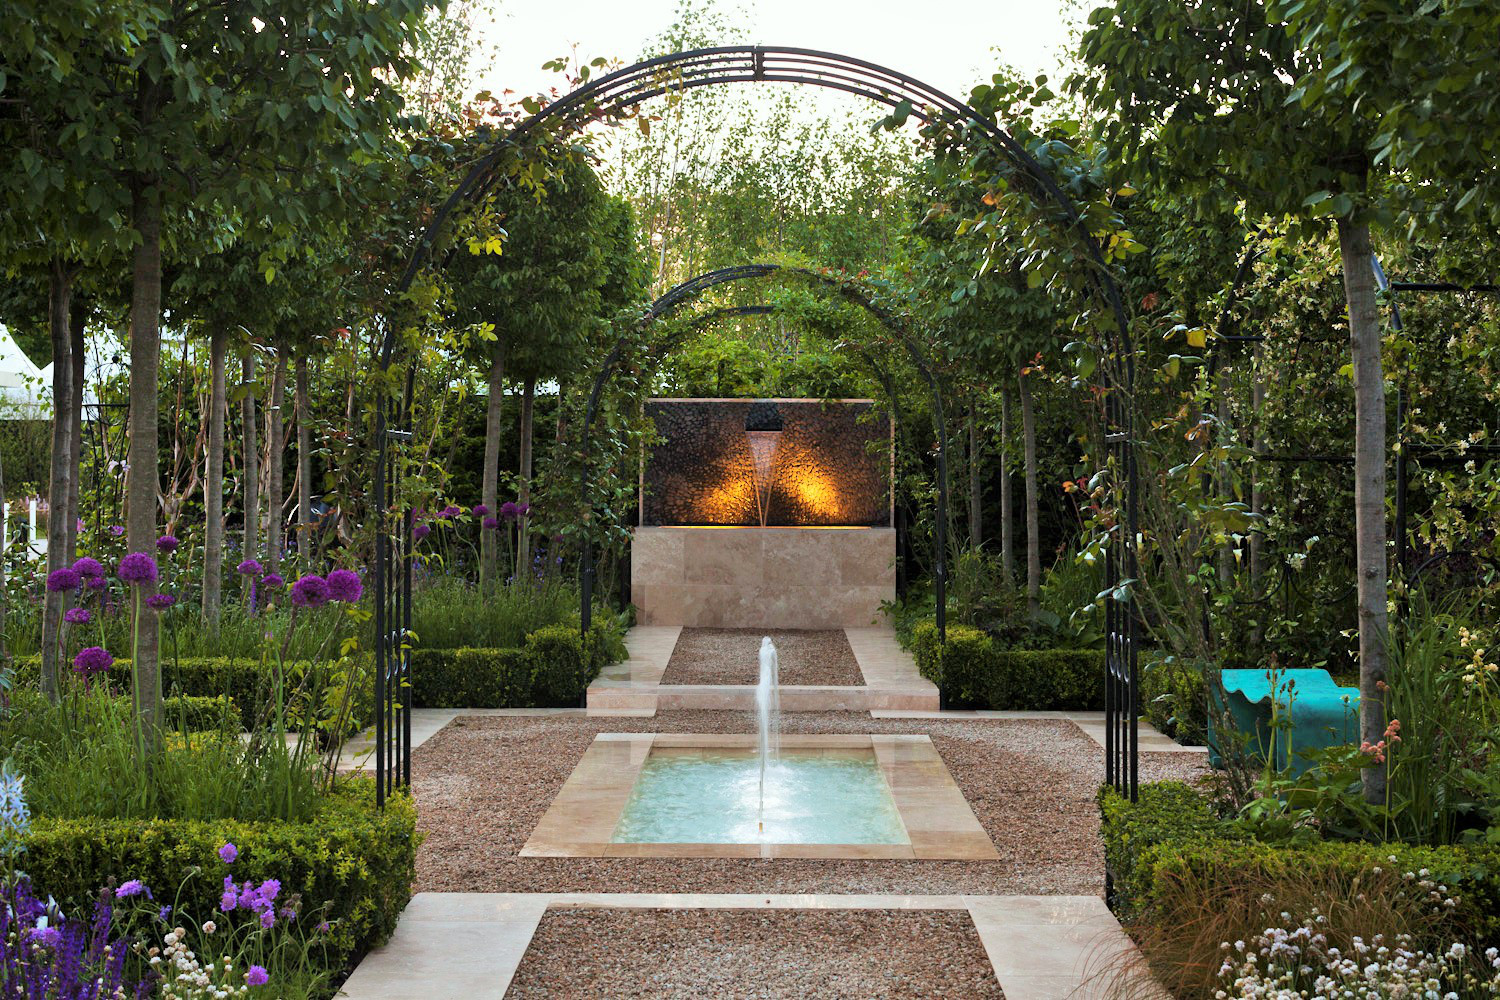 Tim-Austen-Garden-Design-Bloom-2013-1